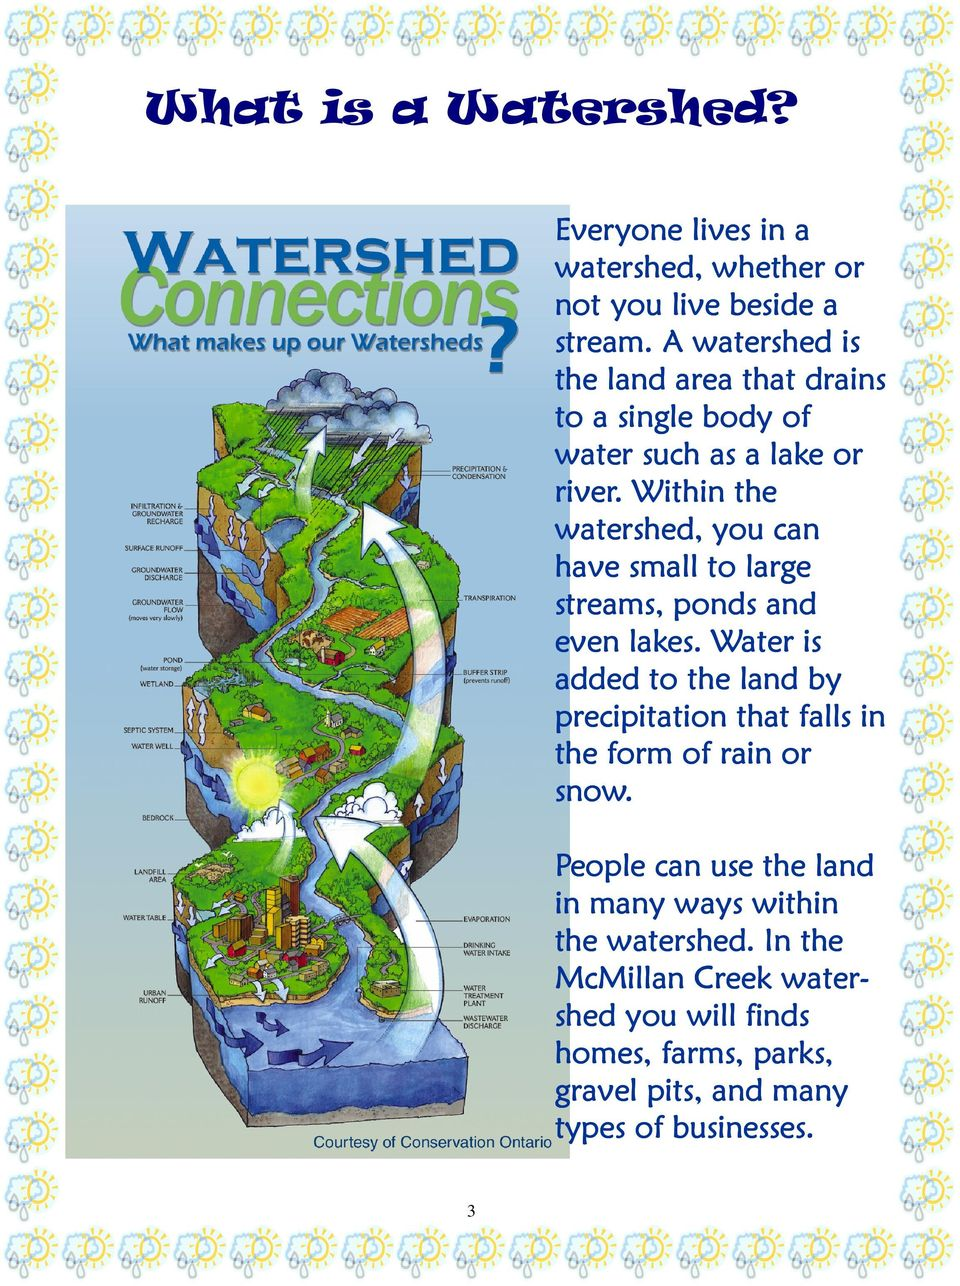 Within the watershed, you can have small to large streams, ponds and even lakes.